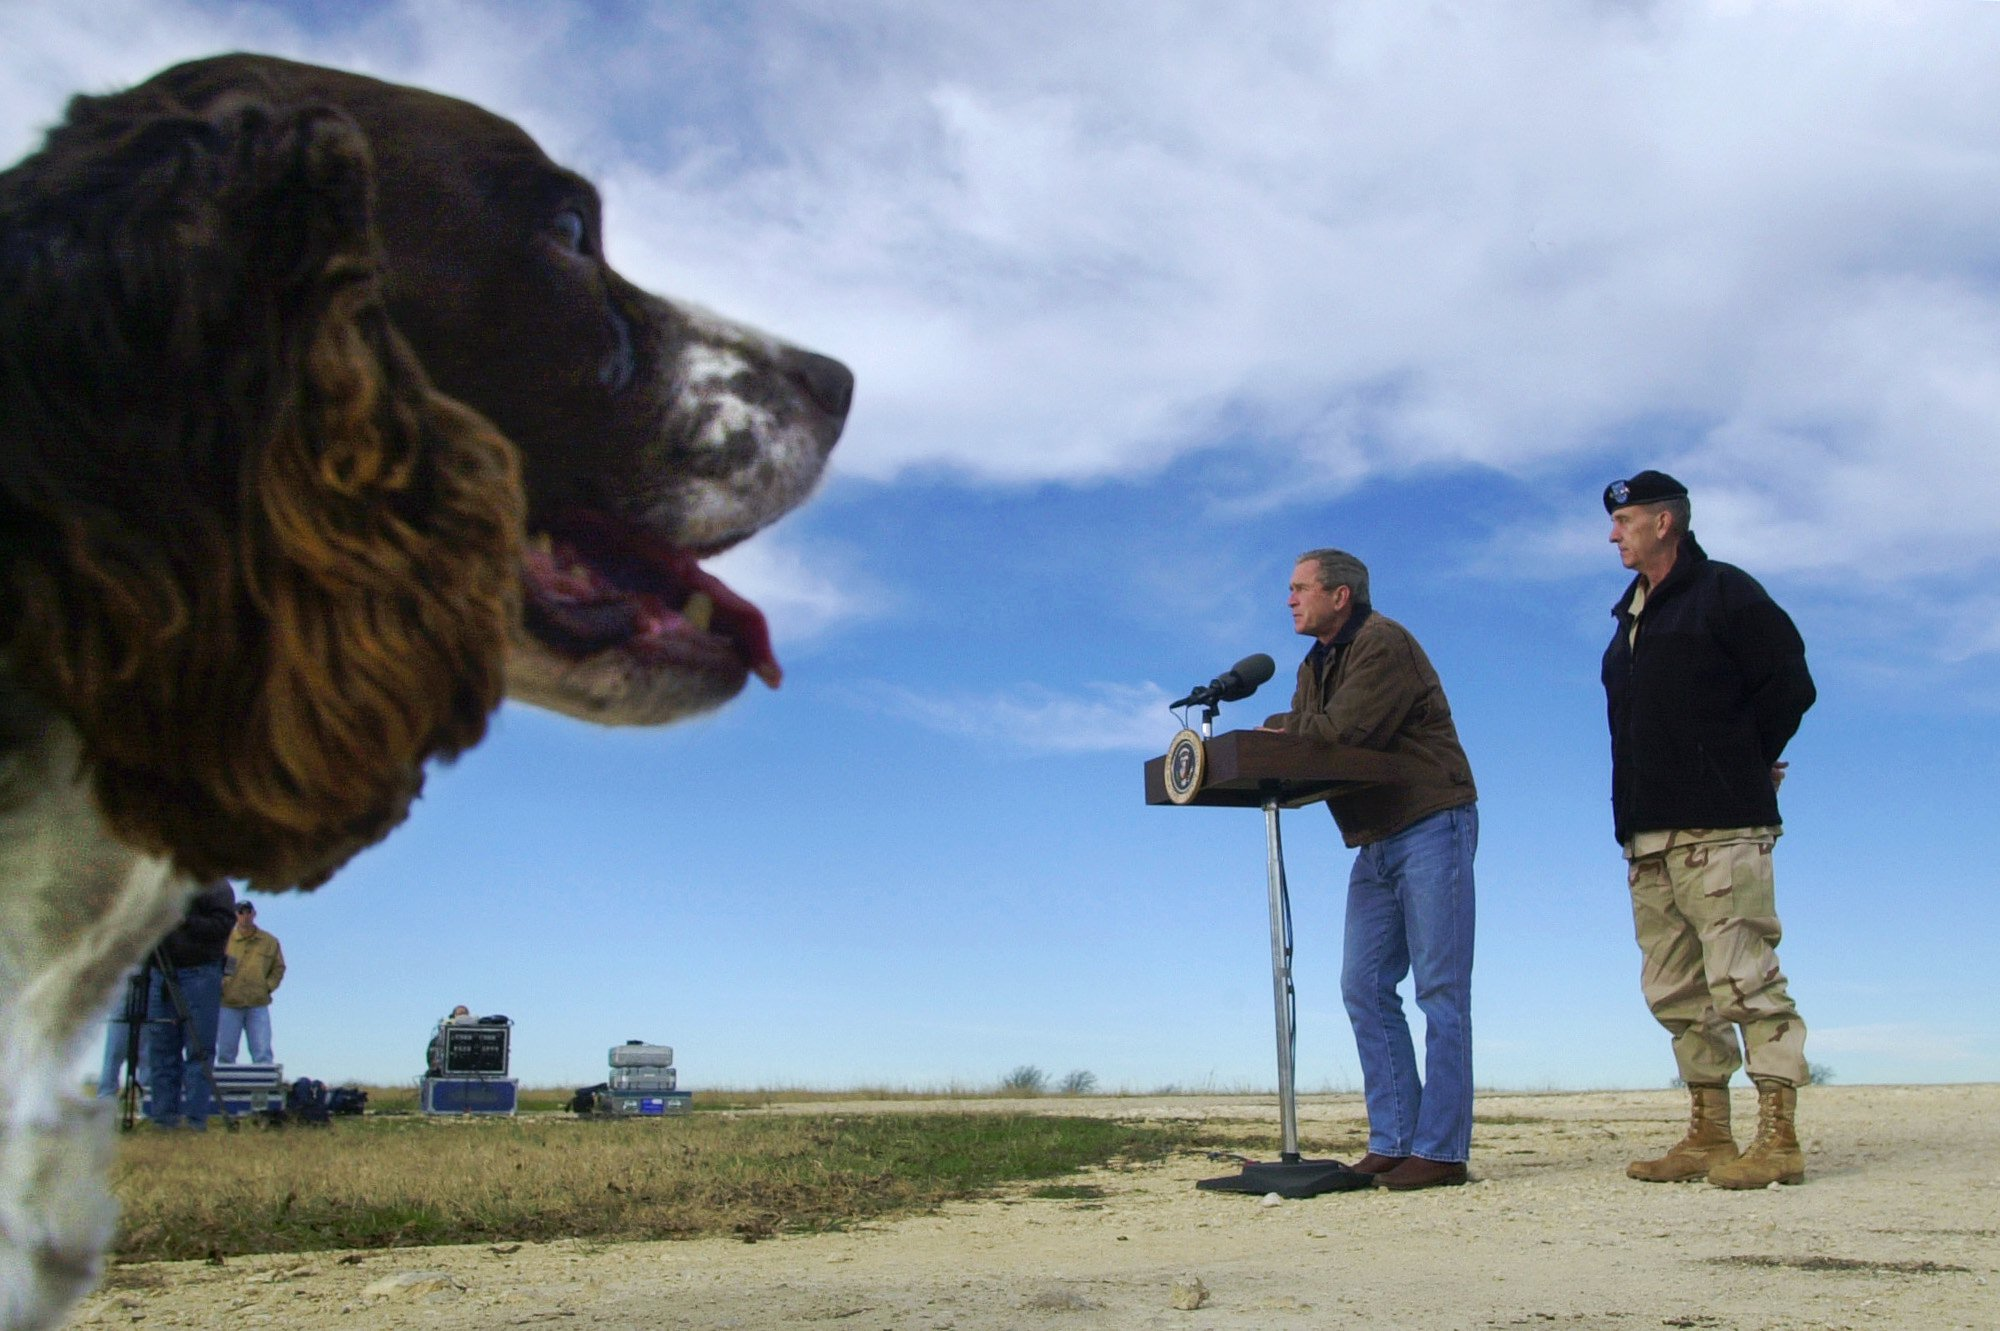 With his dog Spot, an English Springer Spaniel, looking on, President Bush, standing with Afghan war commander Army Gen. Tommy Franks, answers questions during a news conference at his ranch in Crawford, Texas, Friday, Dec. 28, 2001. (AP Photo/Susan Walsh)